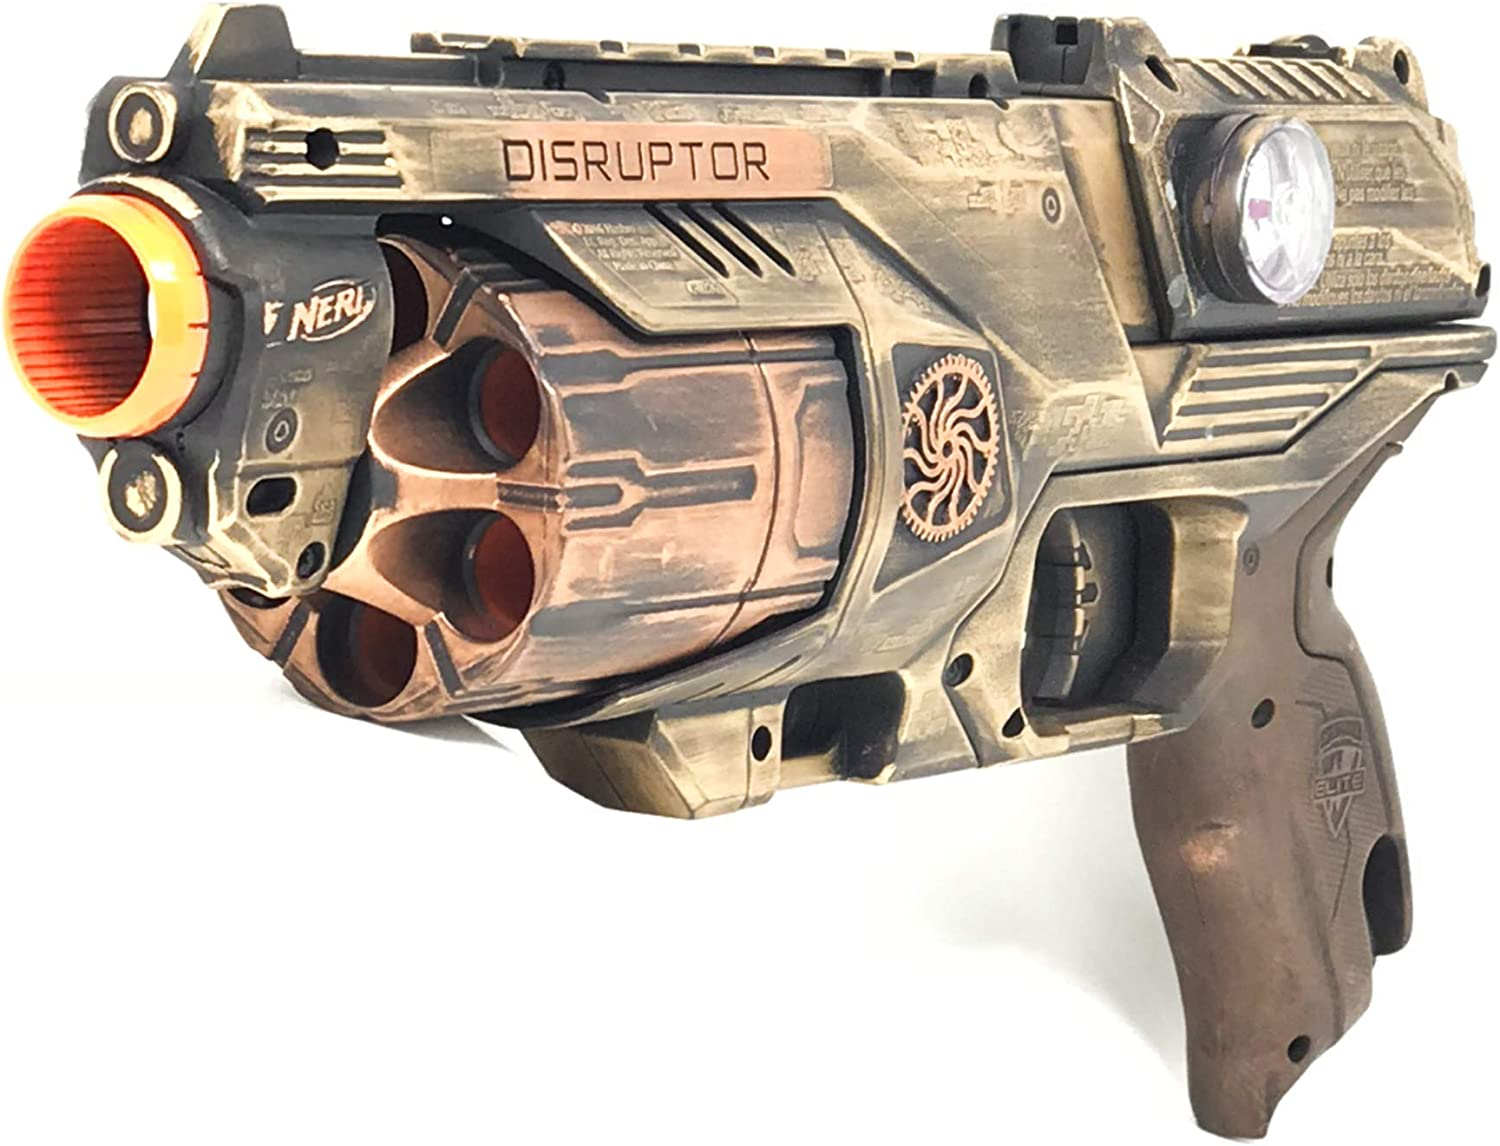 STEAMPUNK GUN FANCY DRESS ACCESSORY FOR ADULT PARTY